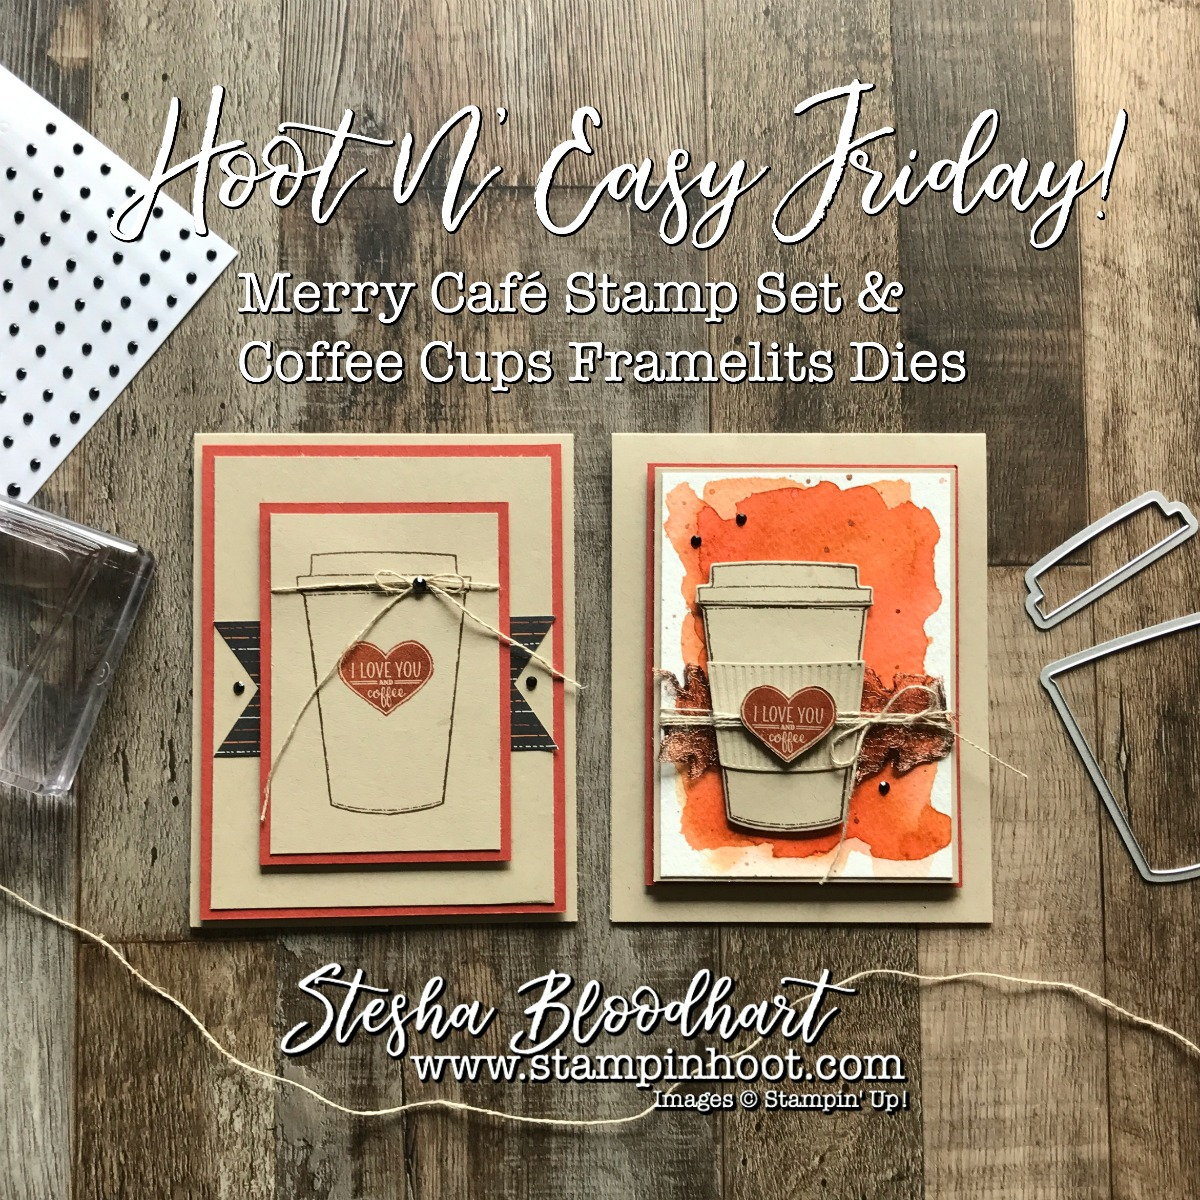 Merry Cafe Stamp Set and Coffee Cups Framelits Dies by Stampin' Up! Come Together for my Hoot N' Easy Friday Blog Feature at Stampin' Hoot! Stesha Bloodhart #stampinup #merrycafe #coffeecup #lovecards #cardmaking #stamping #papercrafts